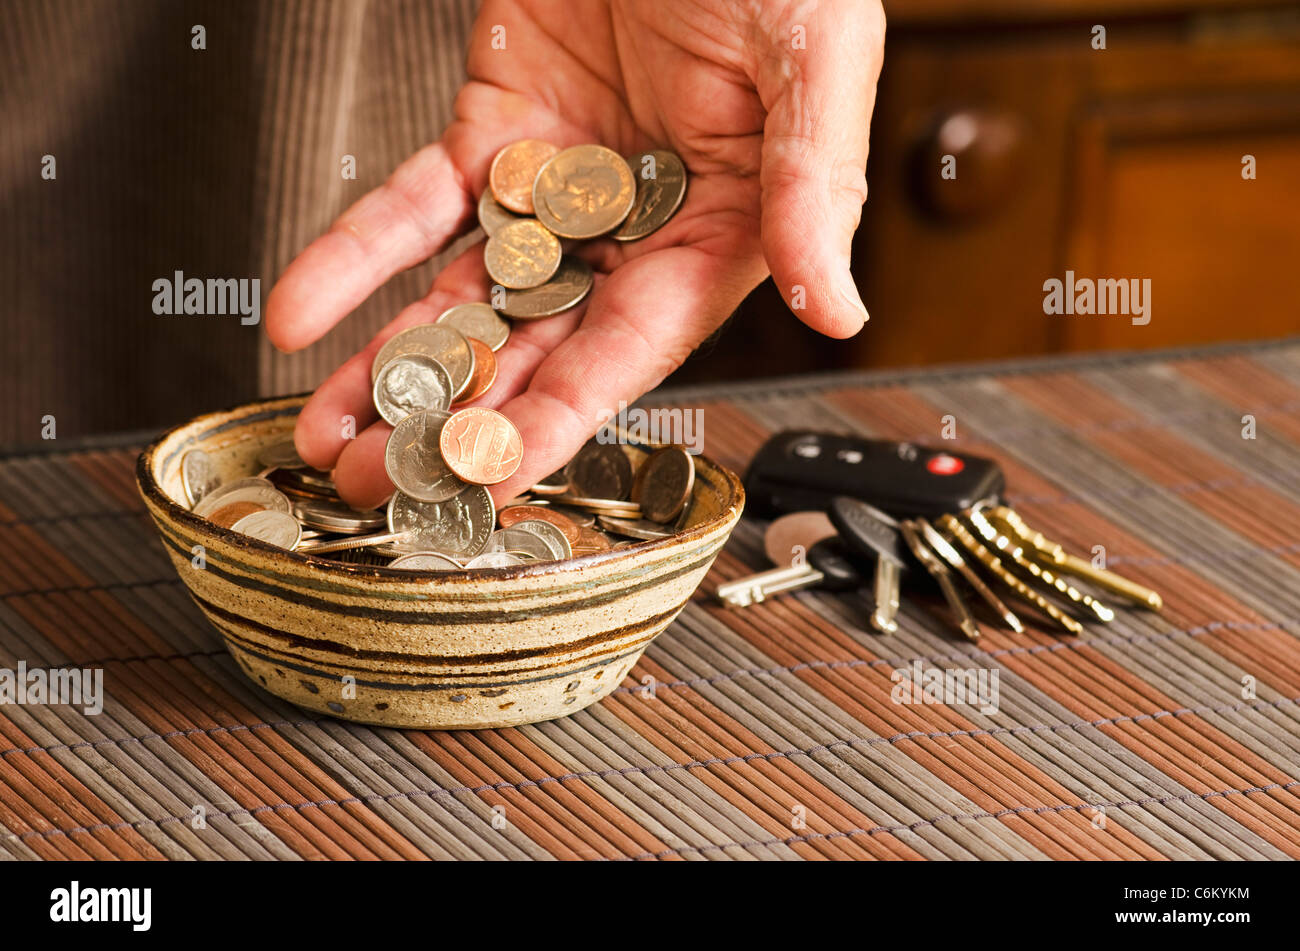 man placing daily pocket change in bowl - Stock Image